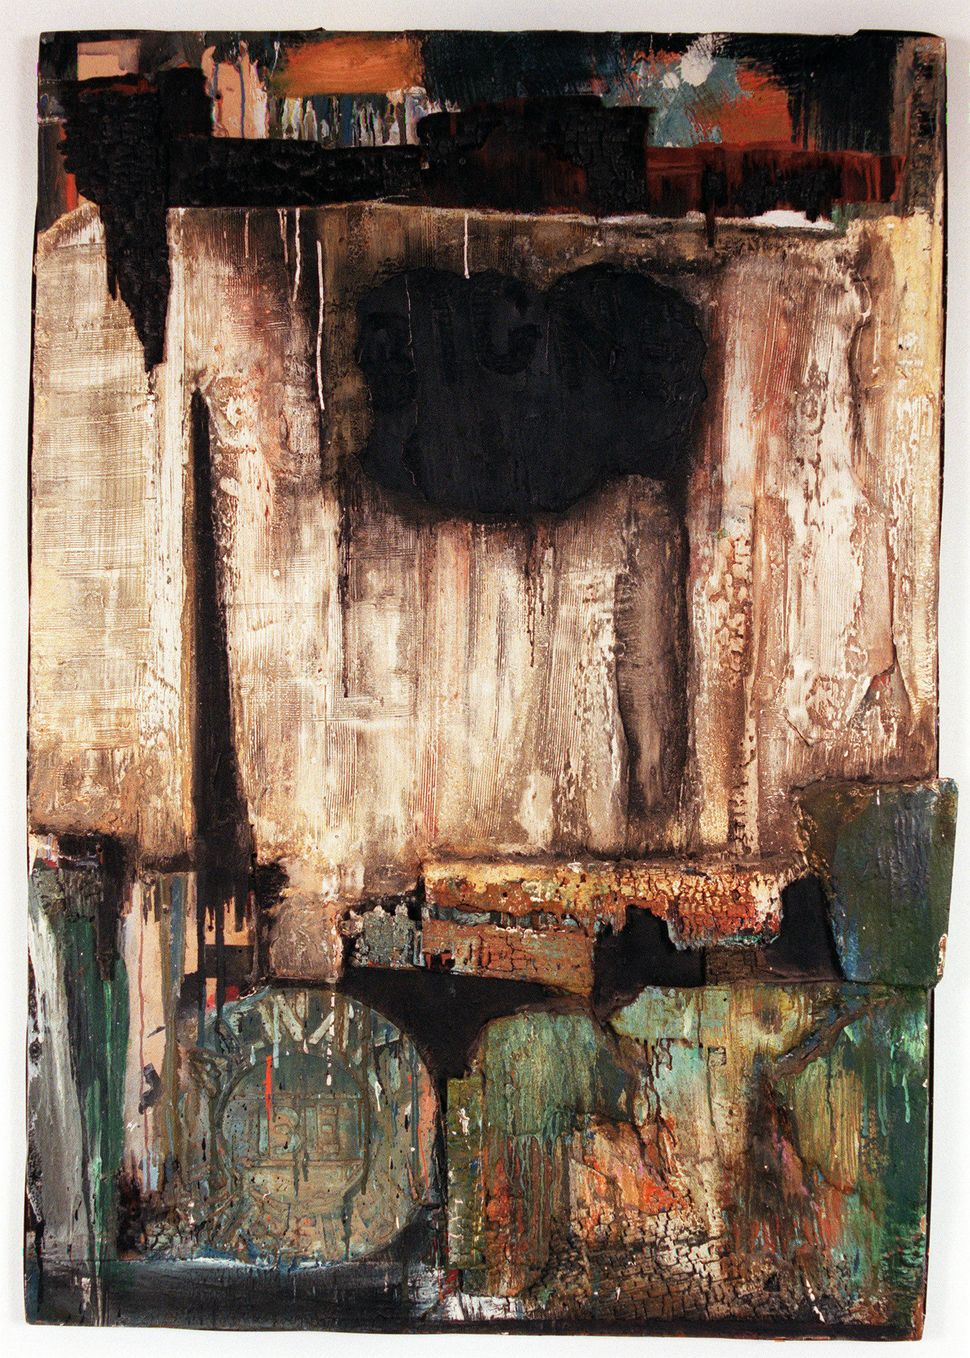 """Watts Riots"" by Noah Purifoy, an artist Jones featured in her 2014 exhibition ""Witness: Art and Civil Rights in t"